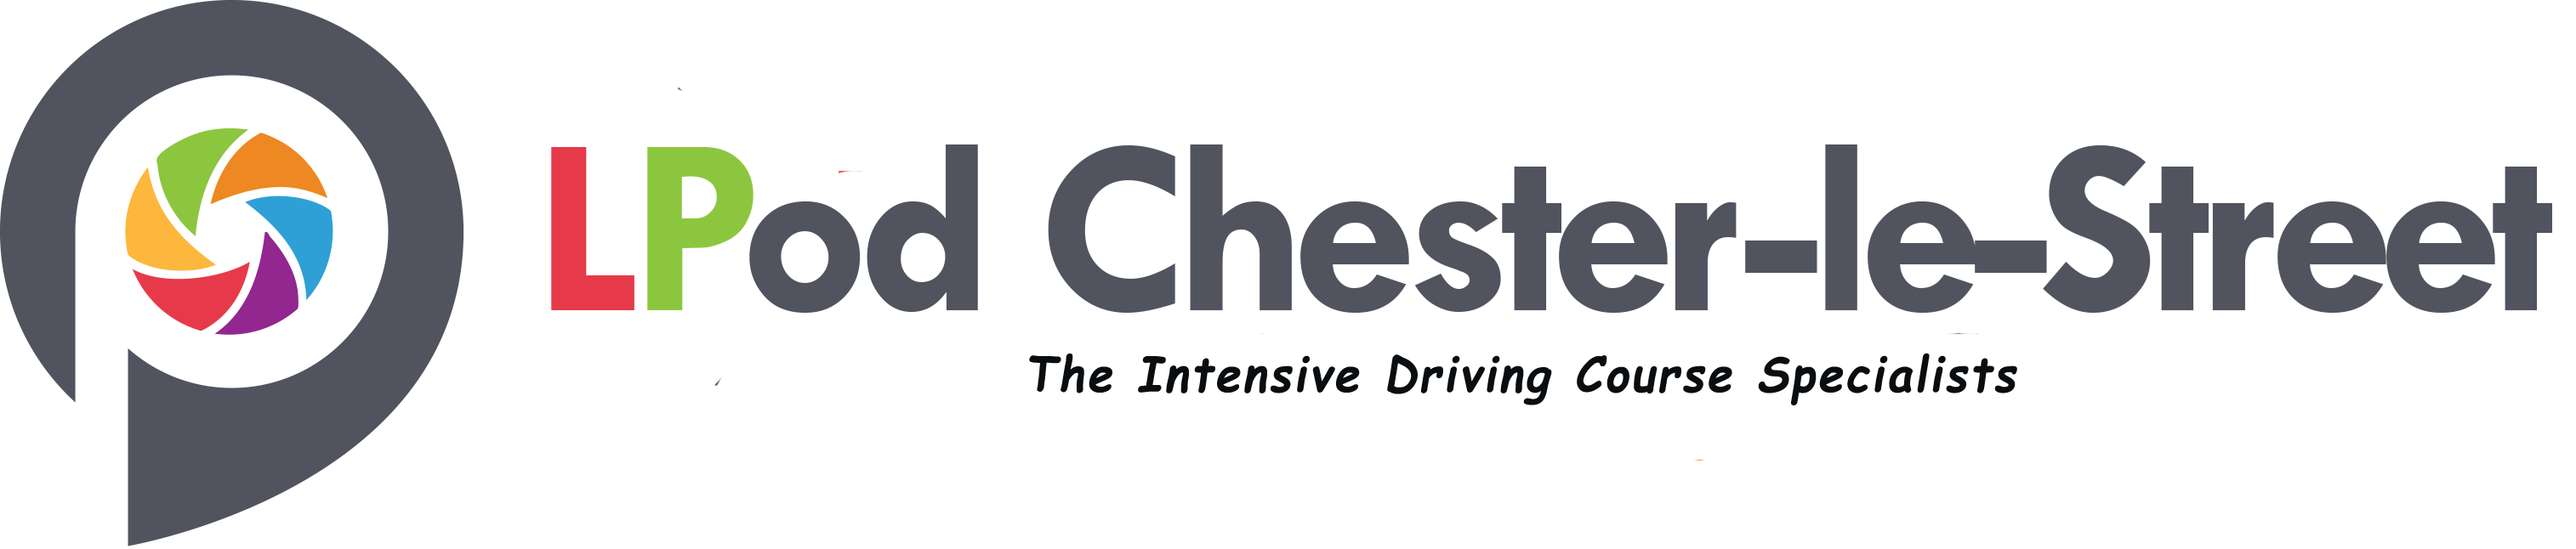 intensive driving courses in Chester-le-Street